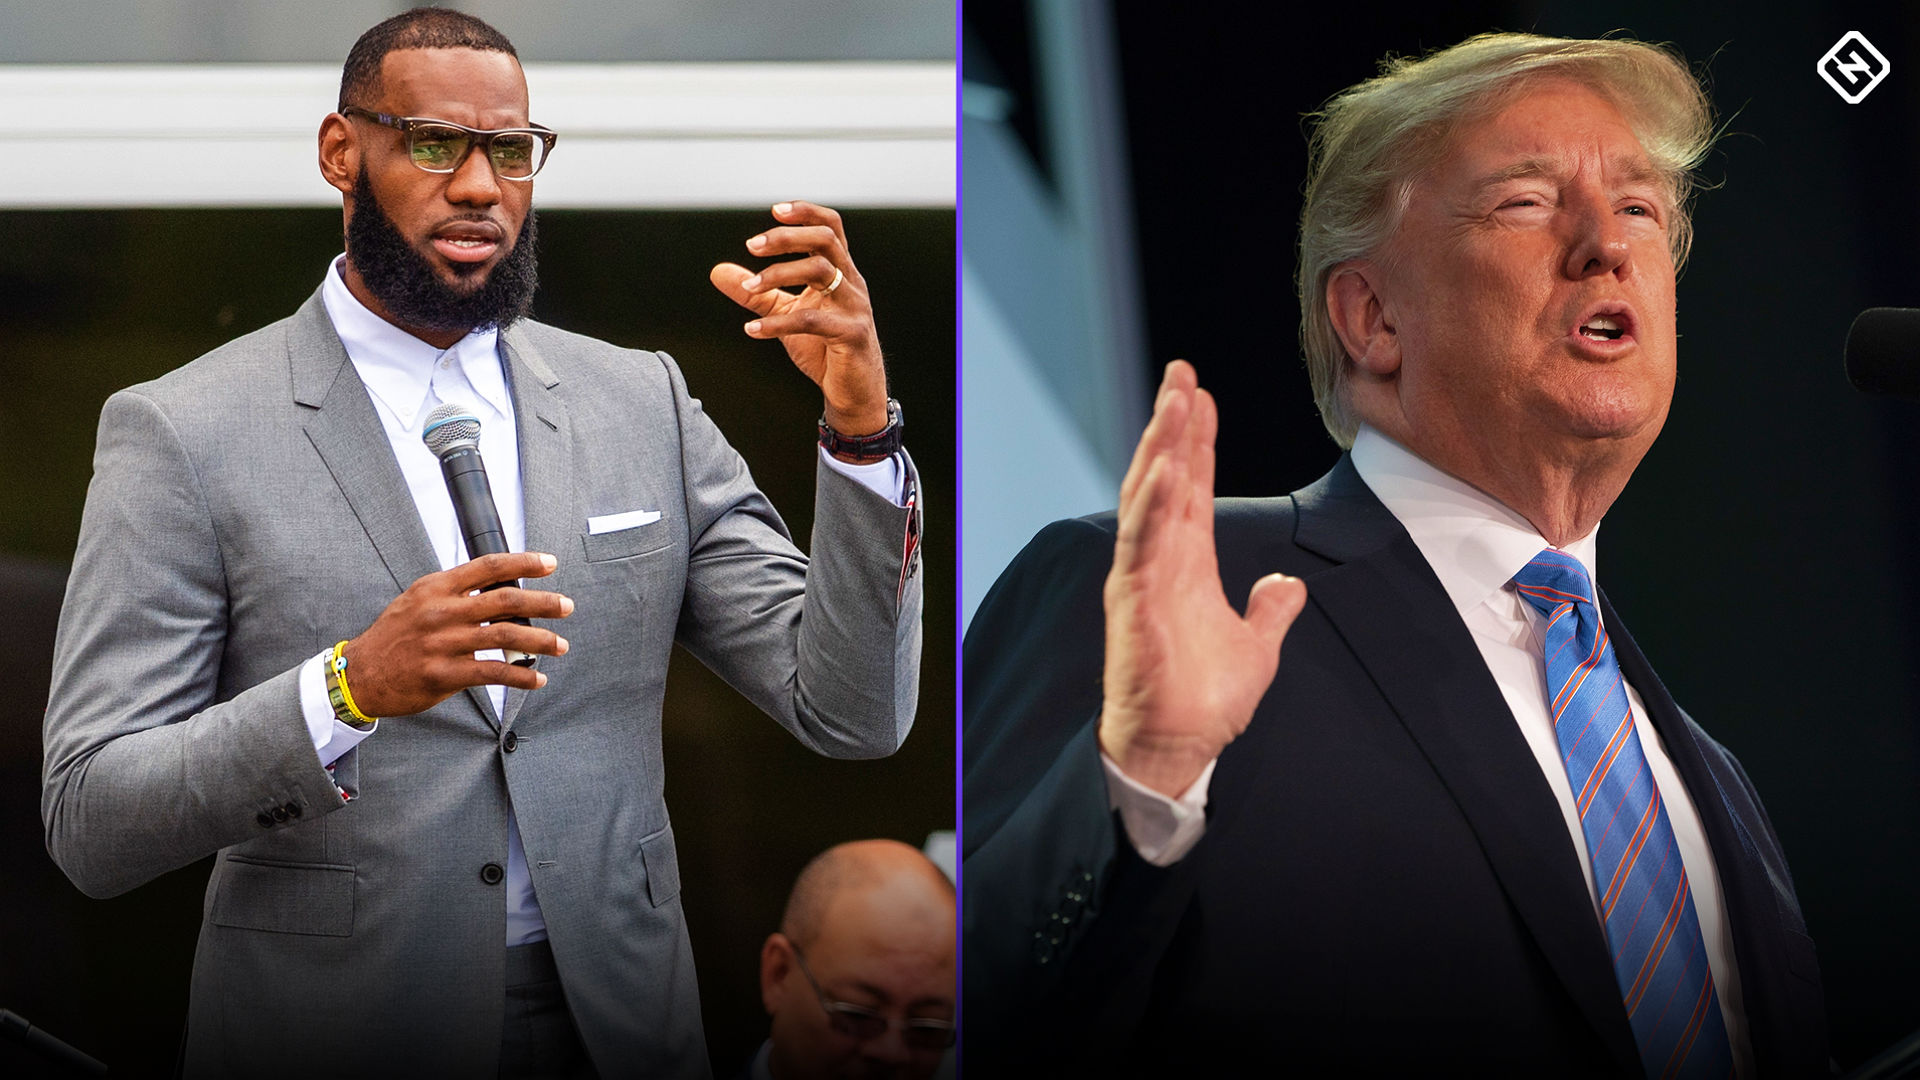 LeBron-Trump-split-080318-Getty-FTR